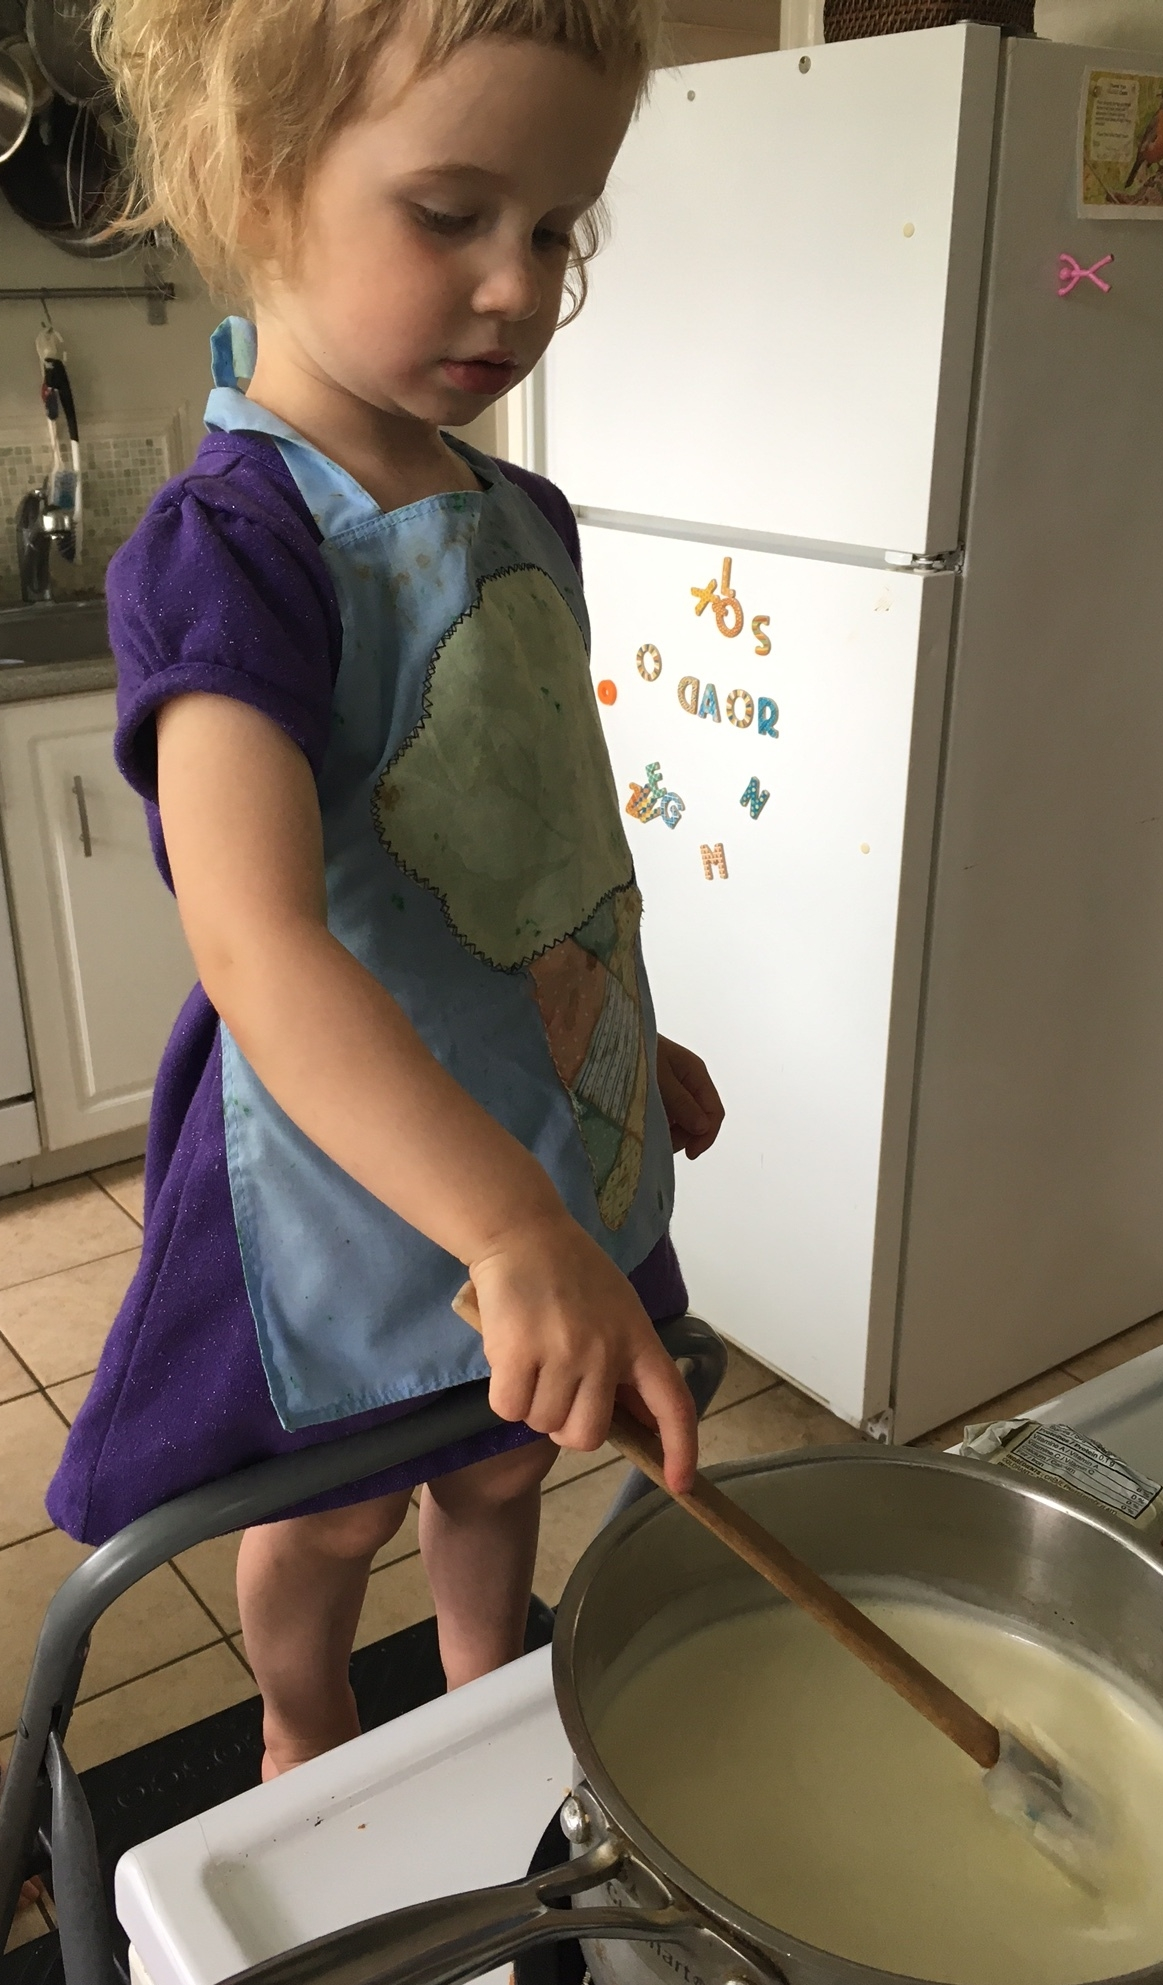 Polly (3) stirring the custard for the ice cream, as it thickens on the stove. She even chose a thematic apron for the occasion